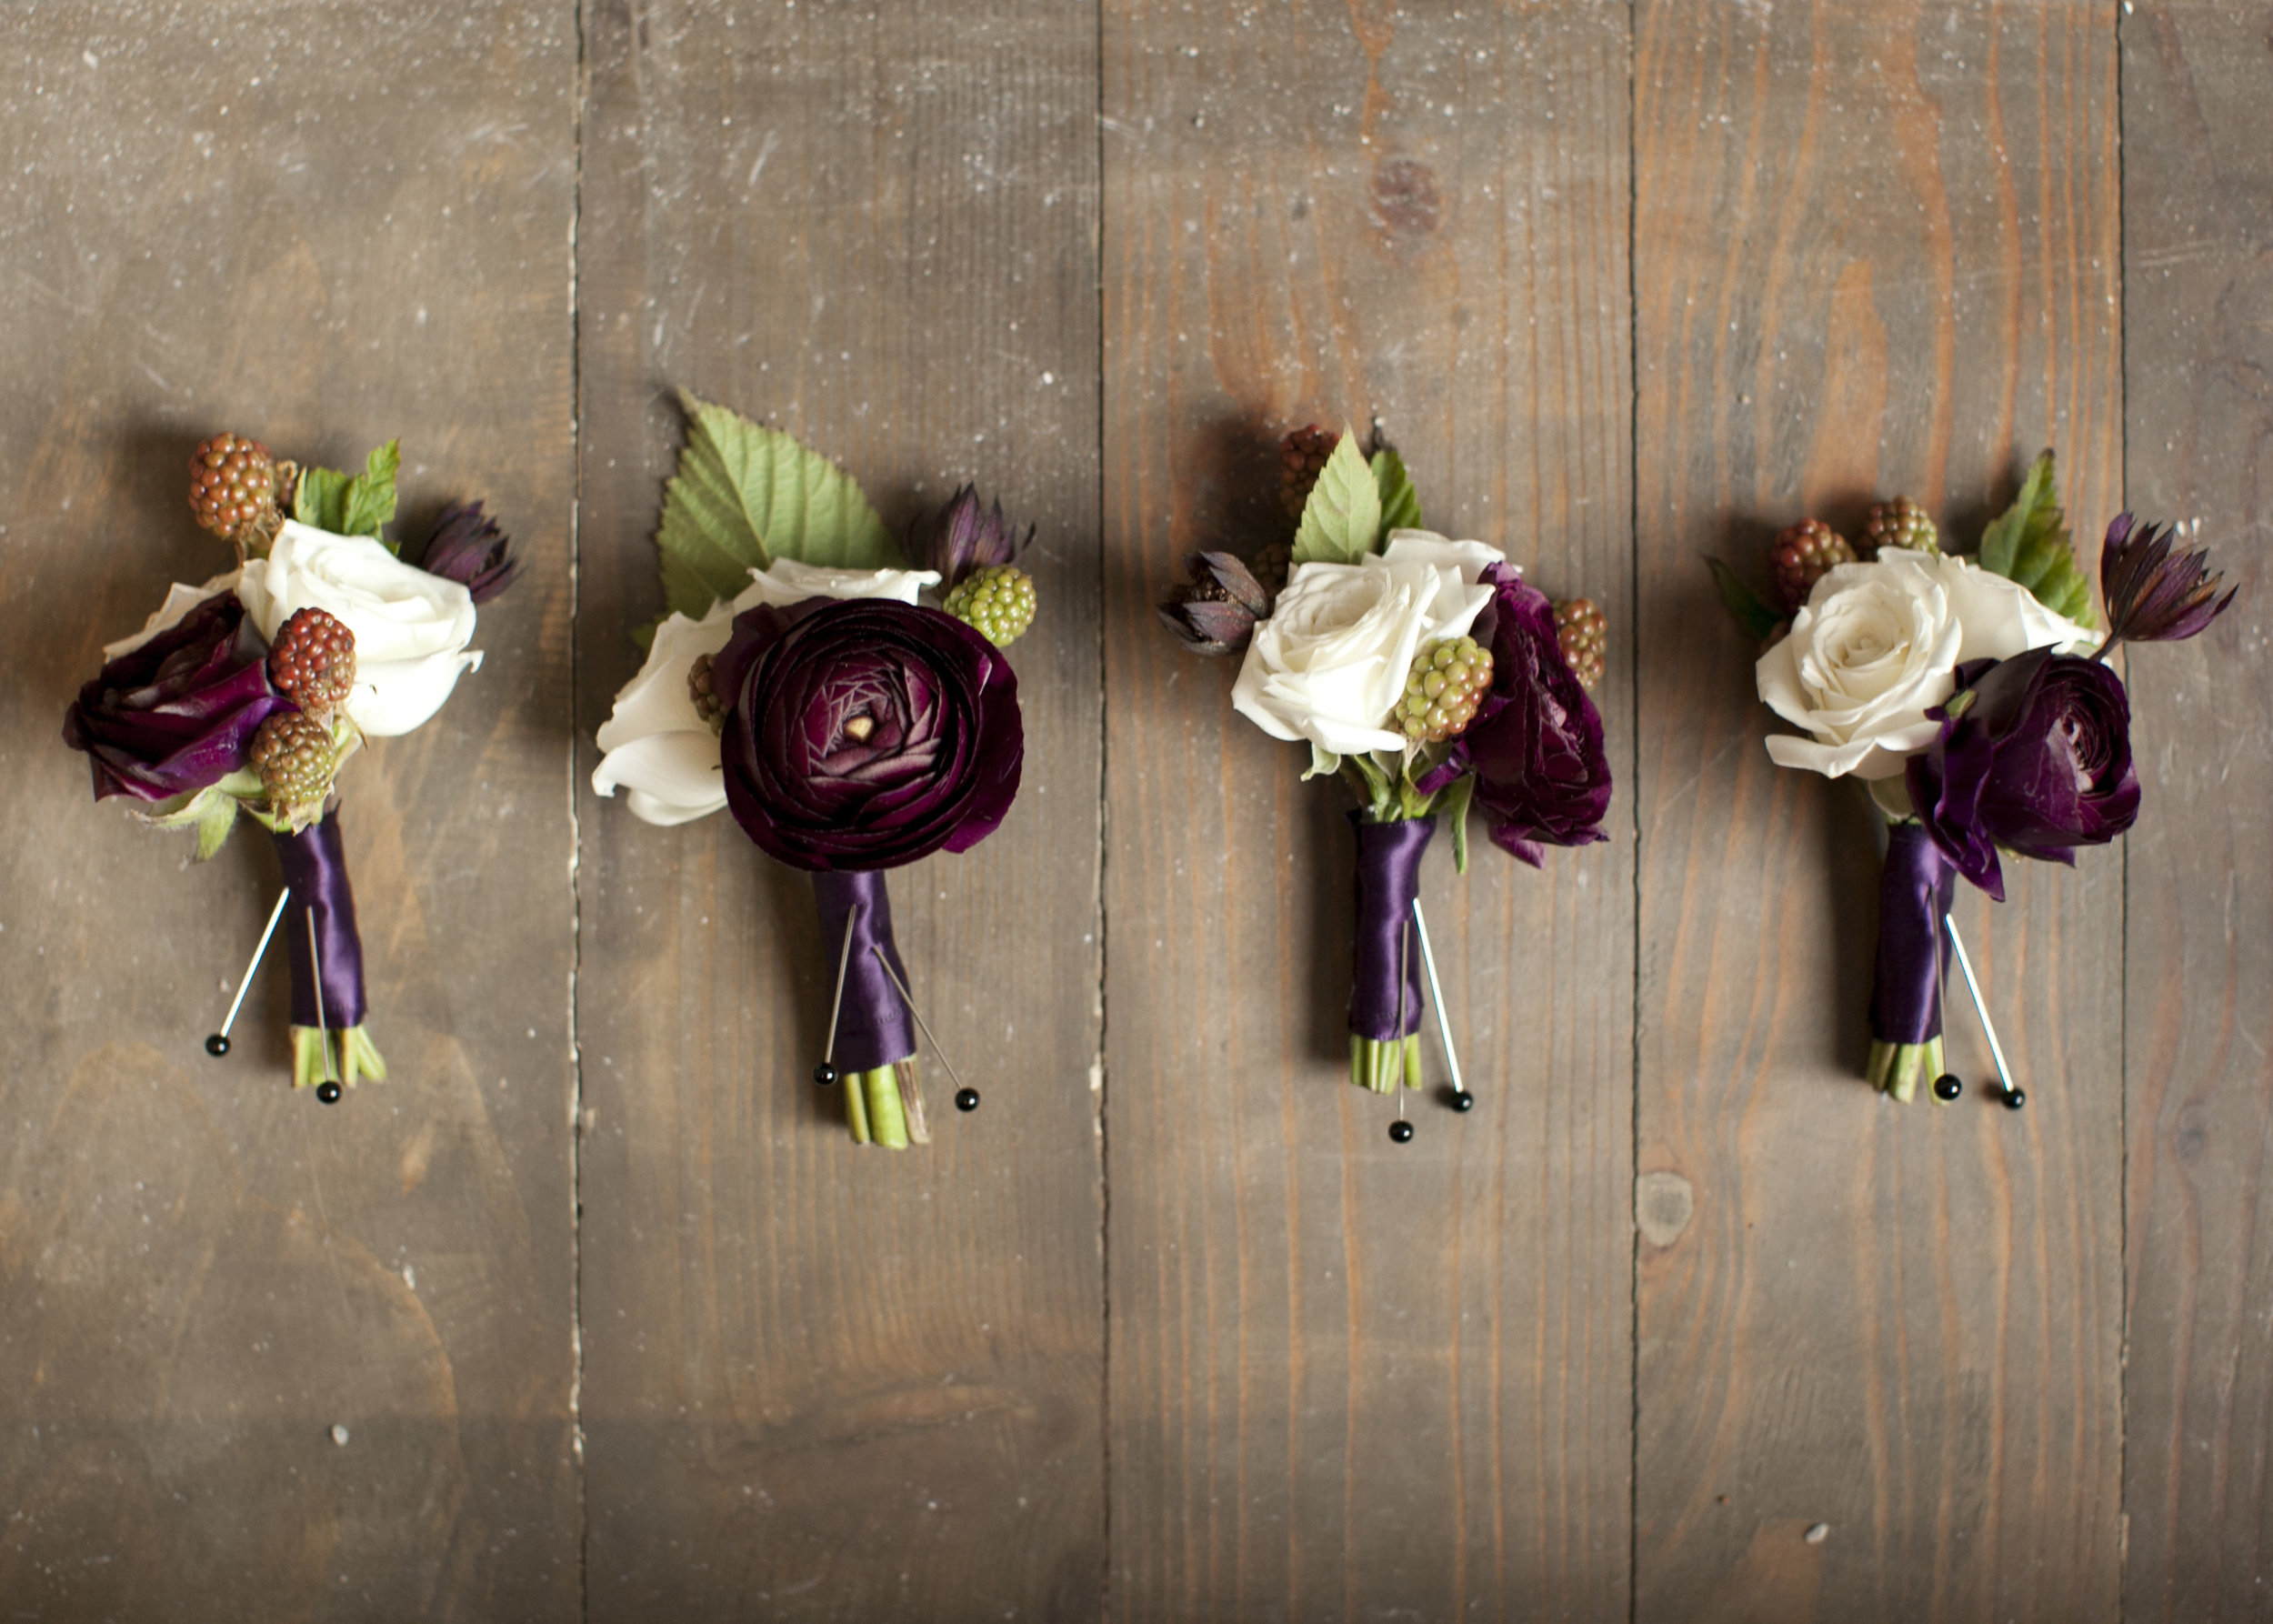 COUPLE'S 2 BOUTONNIERESET - $75INCLUDES:2 GROOM'S BOUTONNIERES• 1 Premium Flower Selection• Assorted flowers with greenery in choice of 2 colors• Hand tied design with ribbon detailing• Delivery to event site (within Kansas City metro)